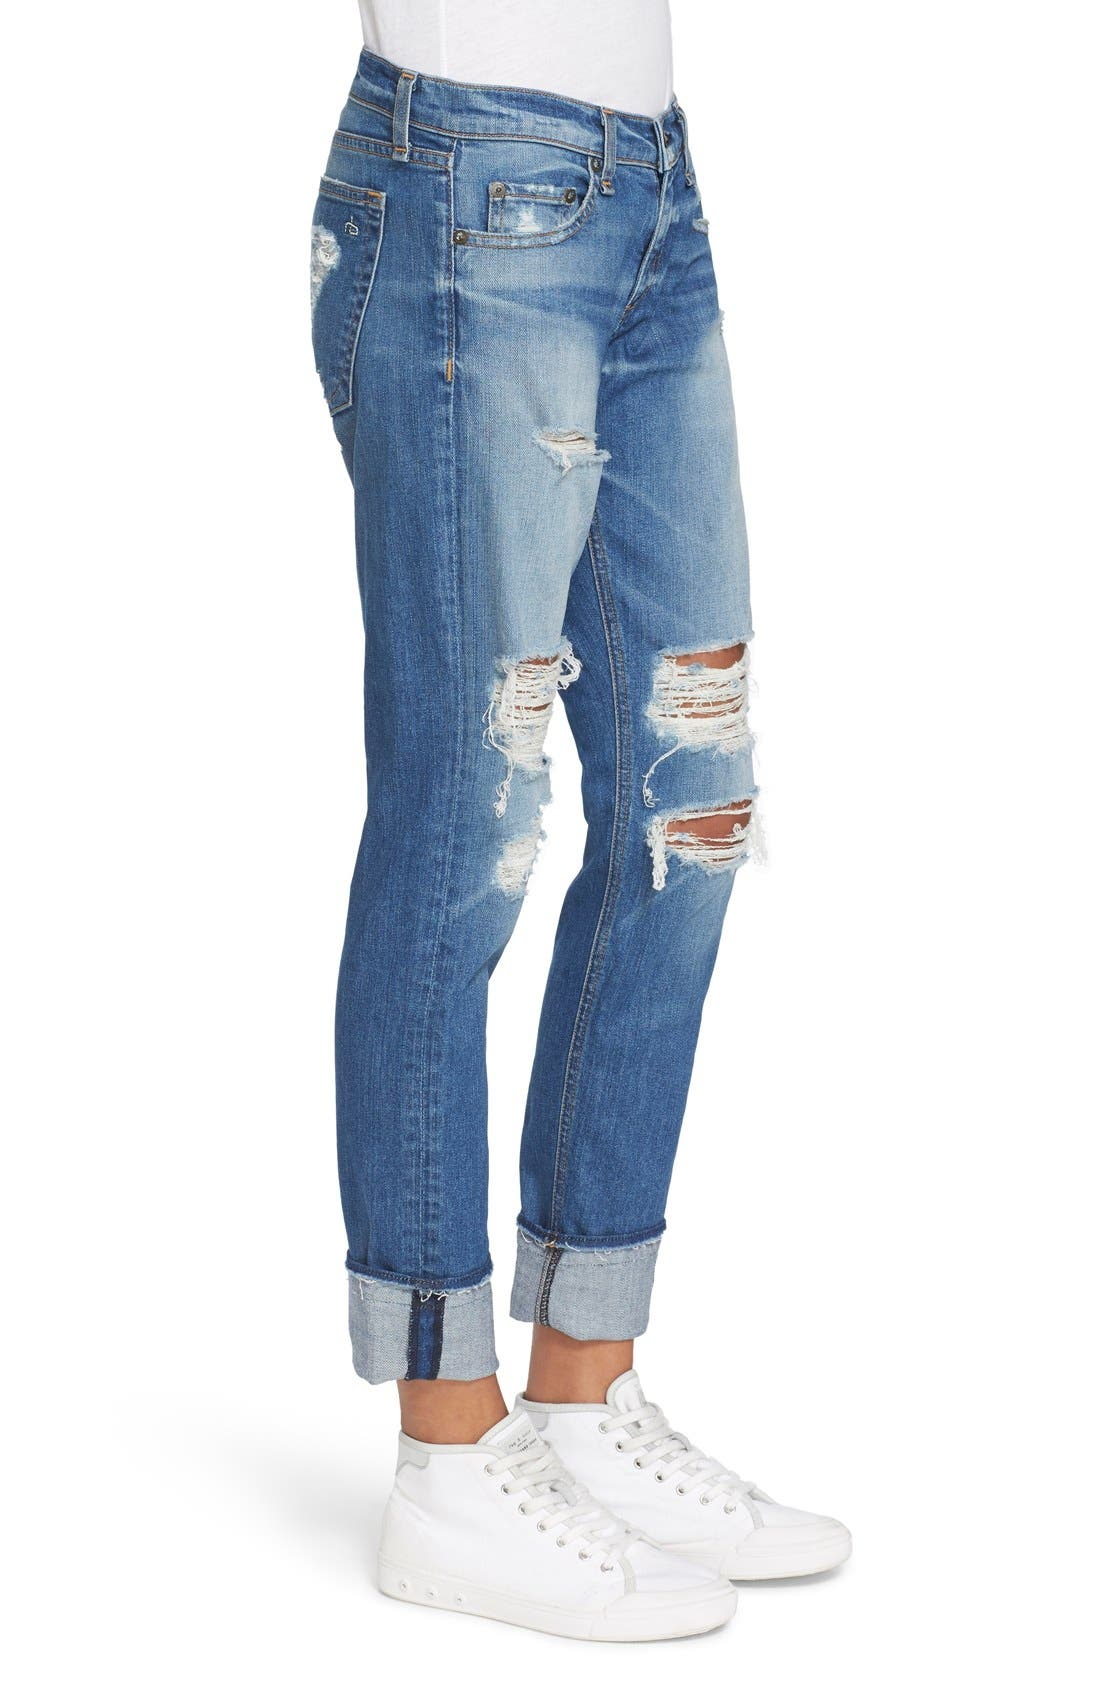 'The Dre' Slim Fit Boyfriend Jeans,                             Alternate thumbnail 2, color,                             429